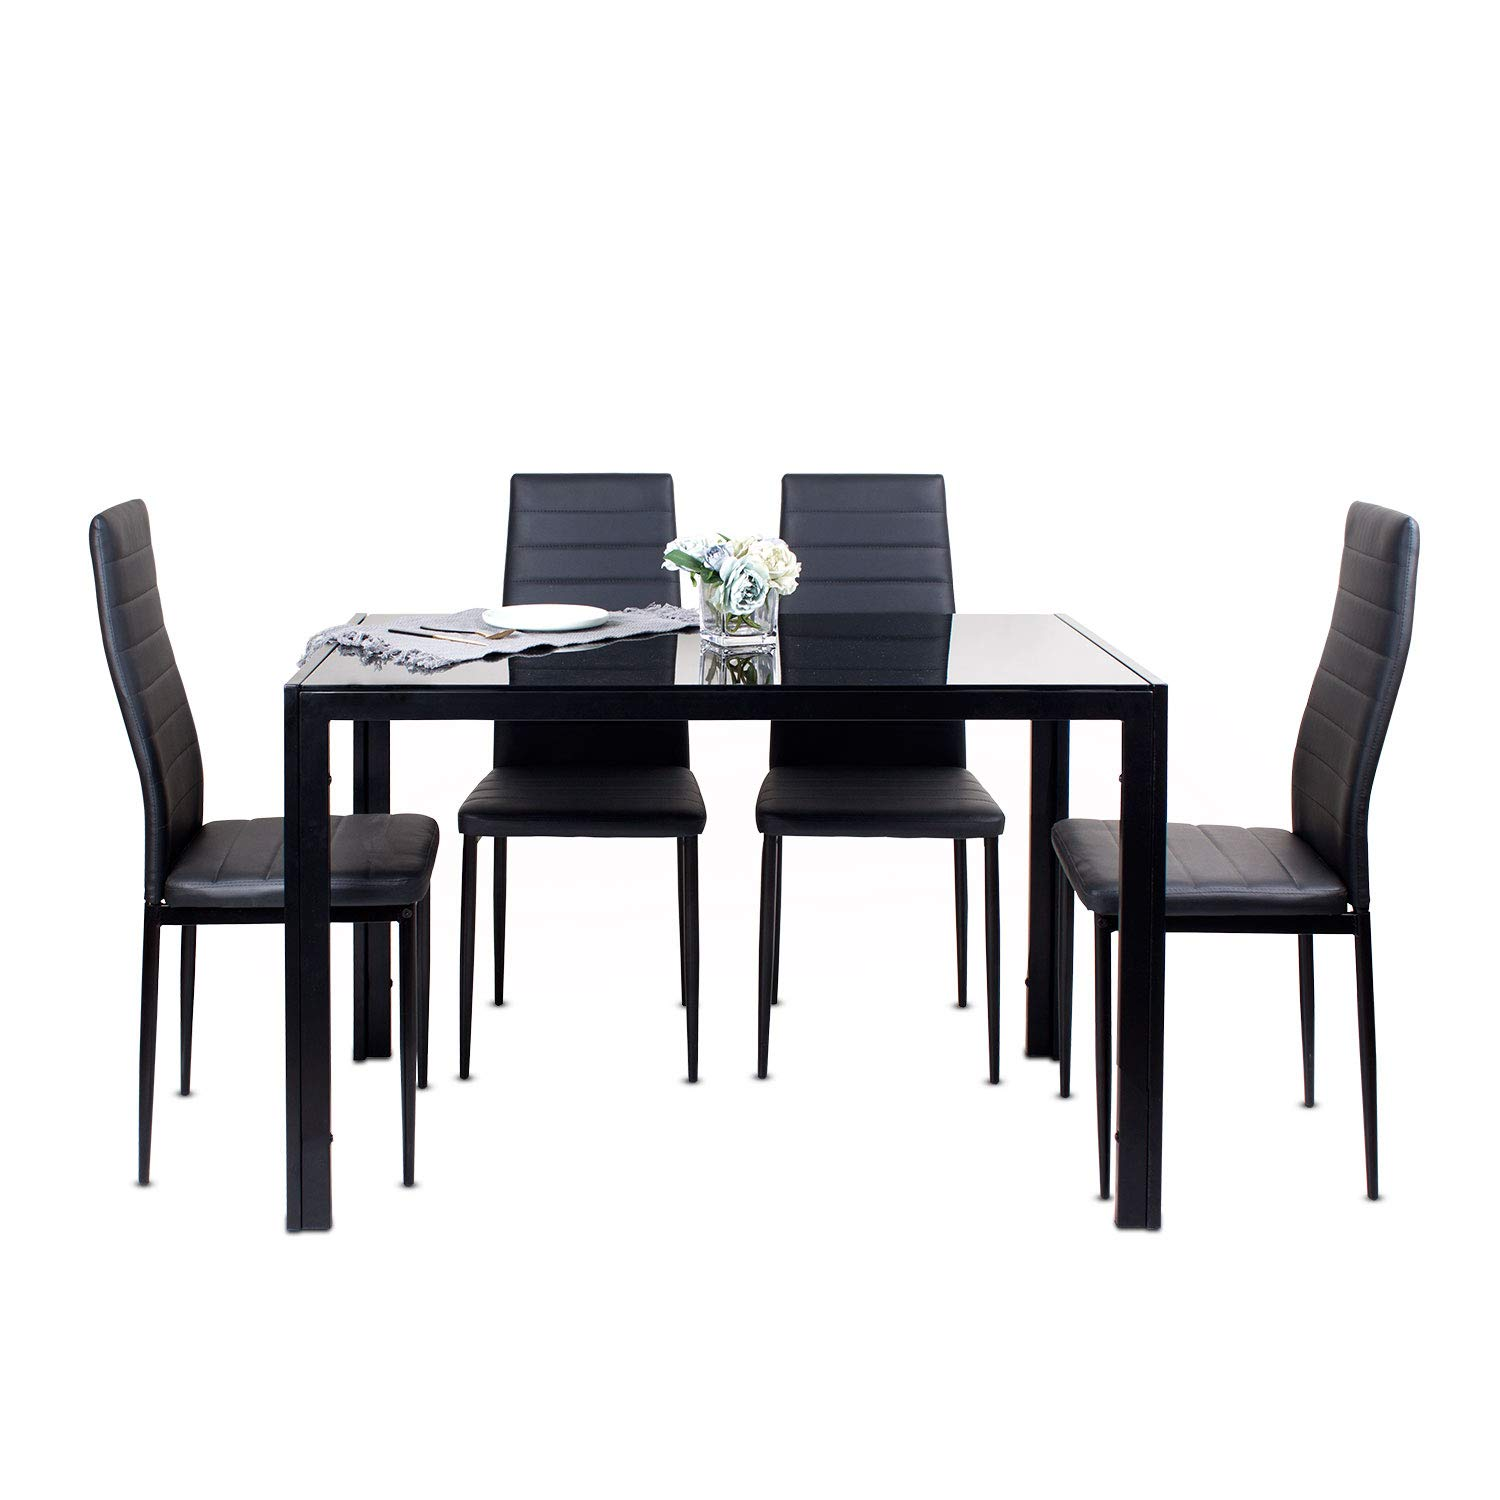 Modern Rectangular Glass Dining Table And Chair Set Of 4 Small Round Table With Metal Leg White Eiffel Dining Chair For Dining Room Kitchen Furniture Rectangular Table 4 Black Chair Buy Online In